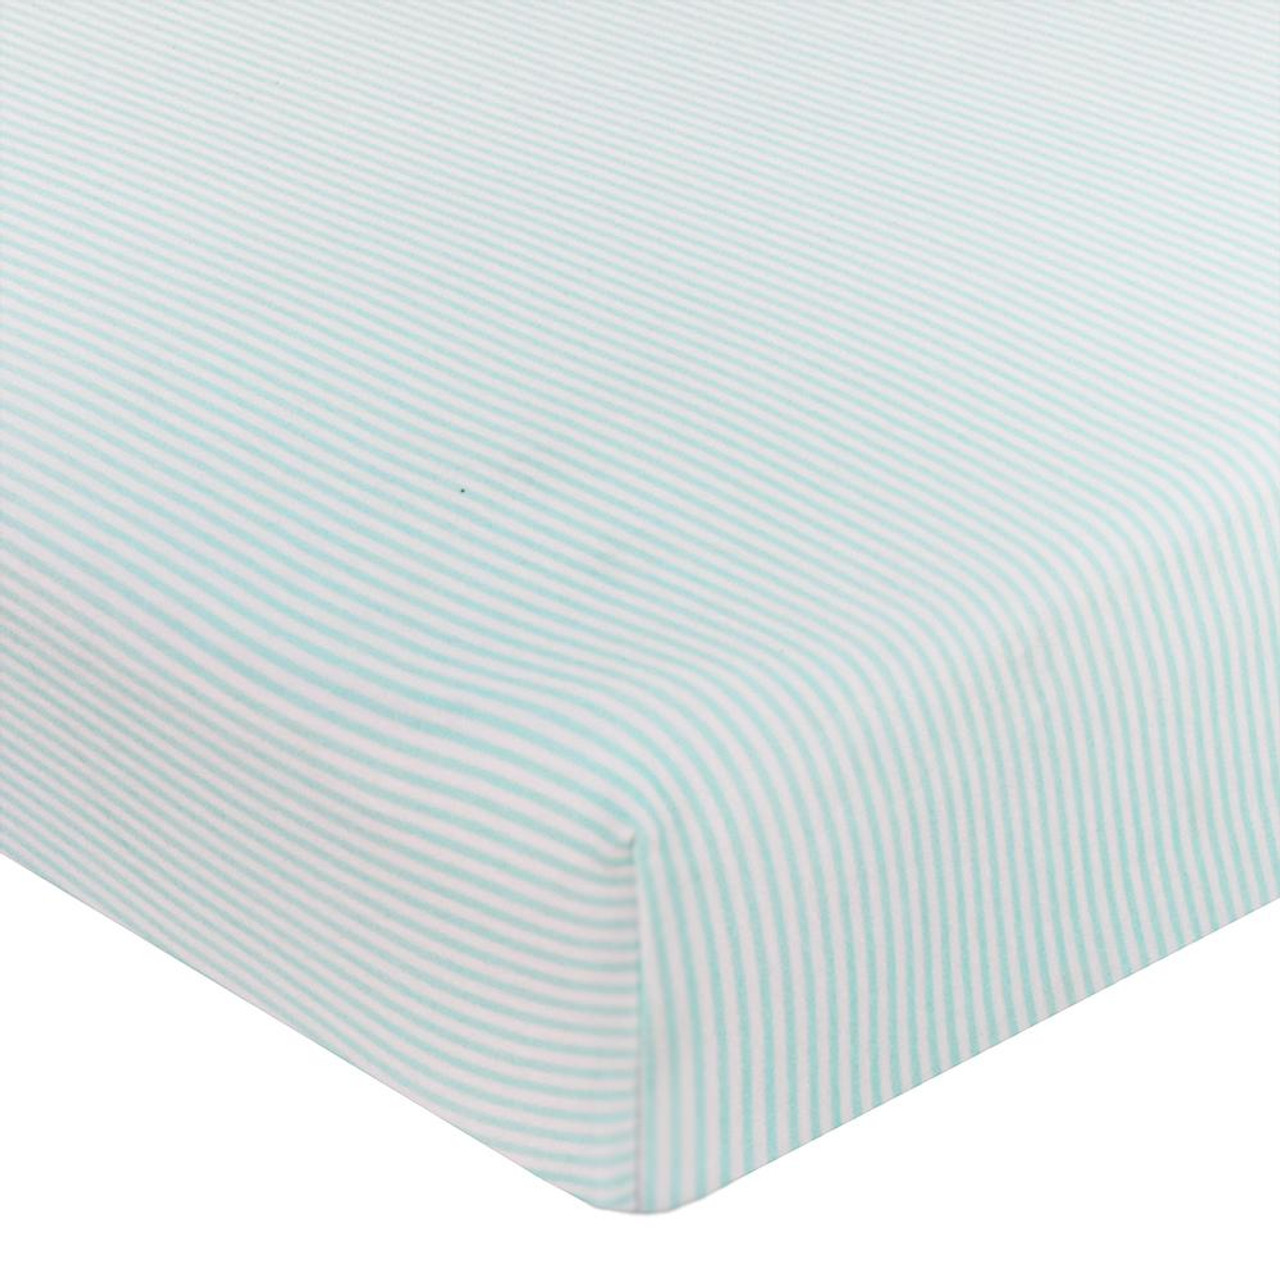 The Living Textiles Jersey Cot Fitted Sheet - AQUA STRIPE